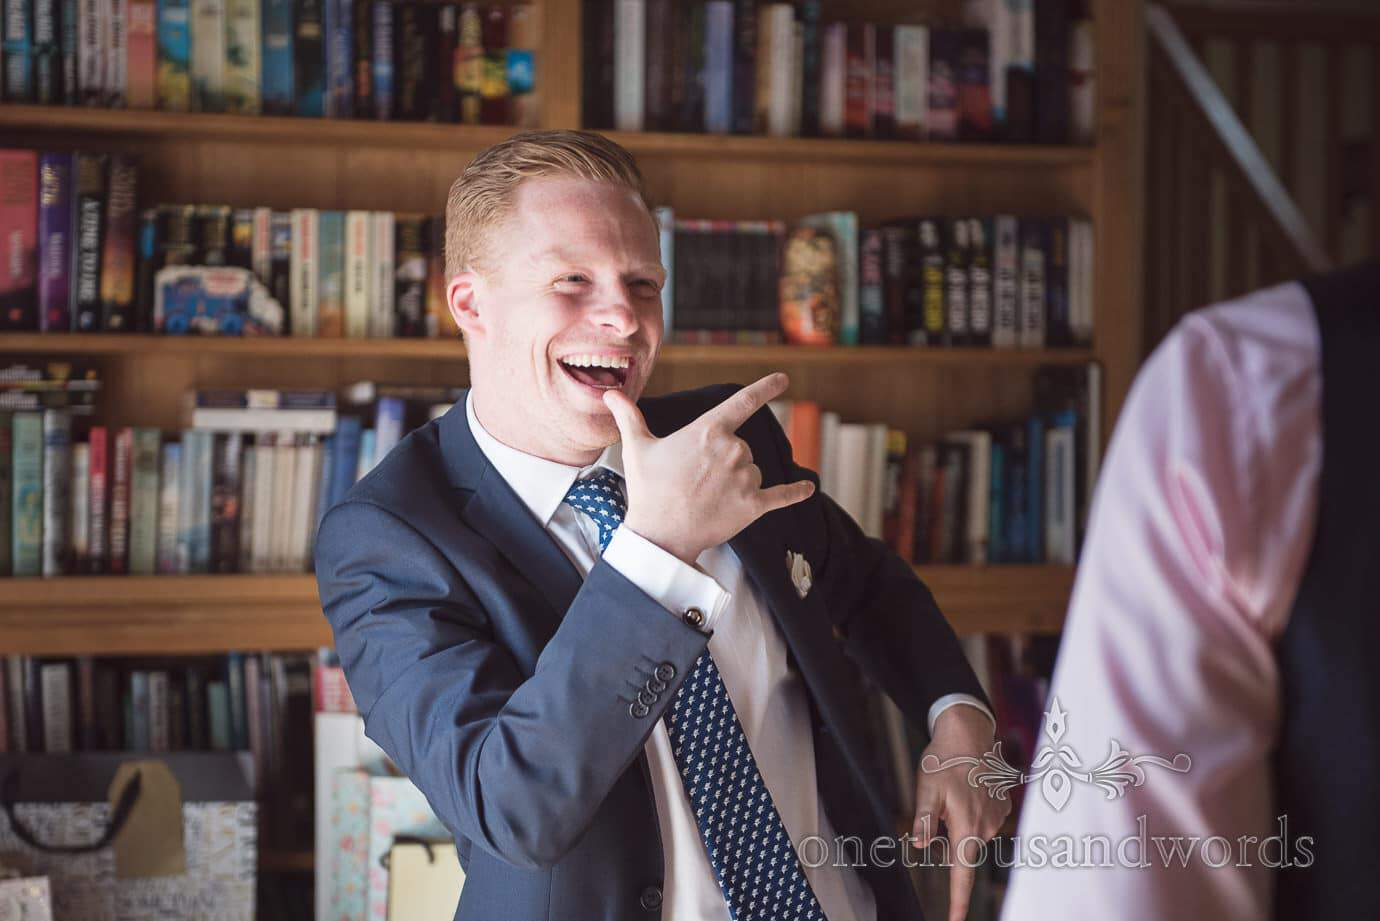 Wedding guest makes gangsta signs in front of bookshelf during receiving line